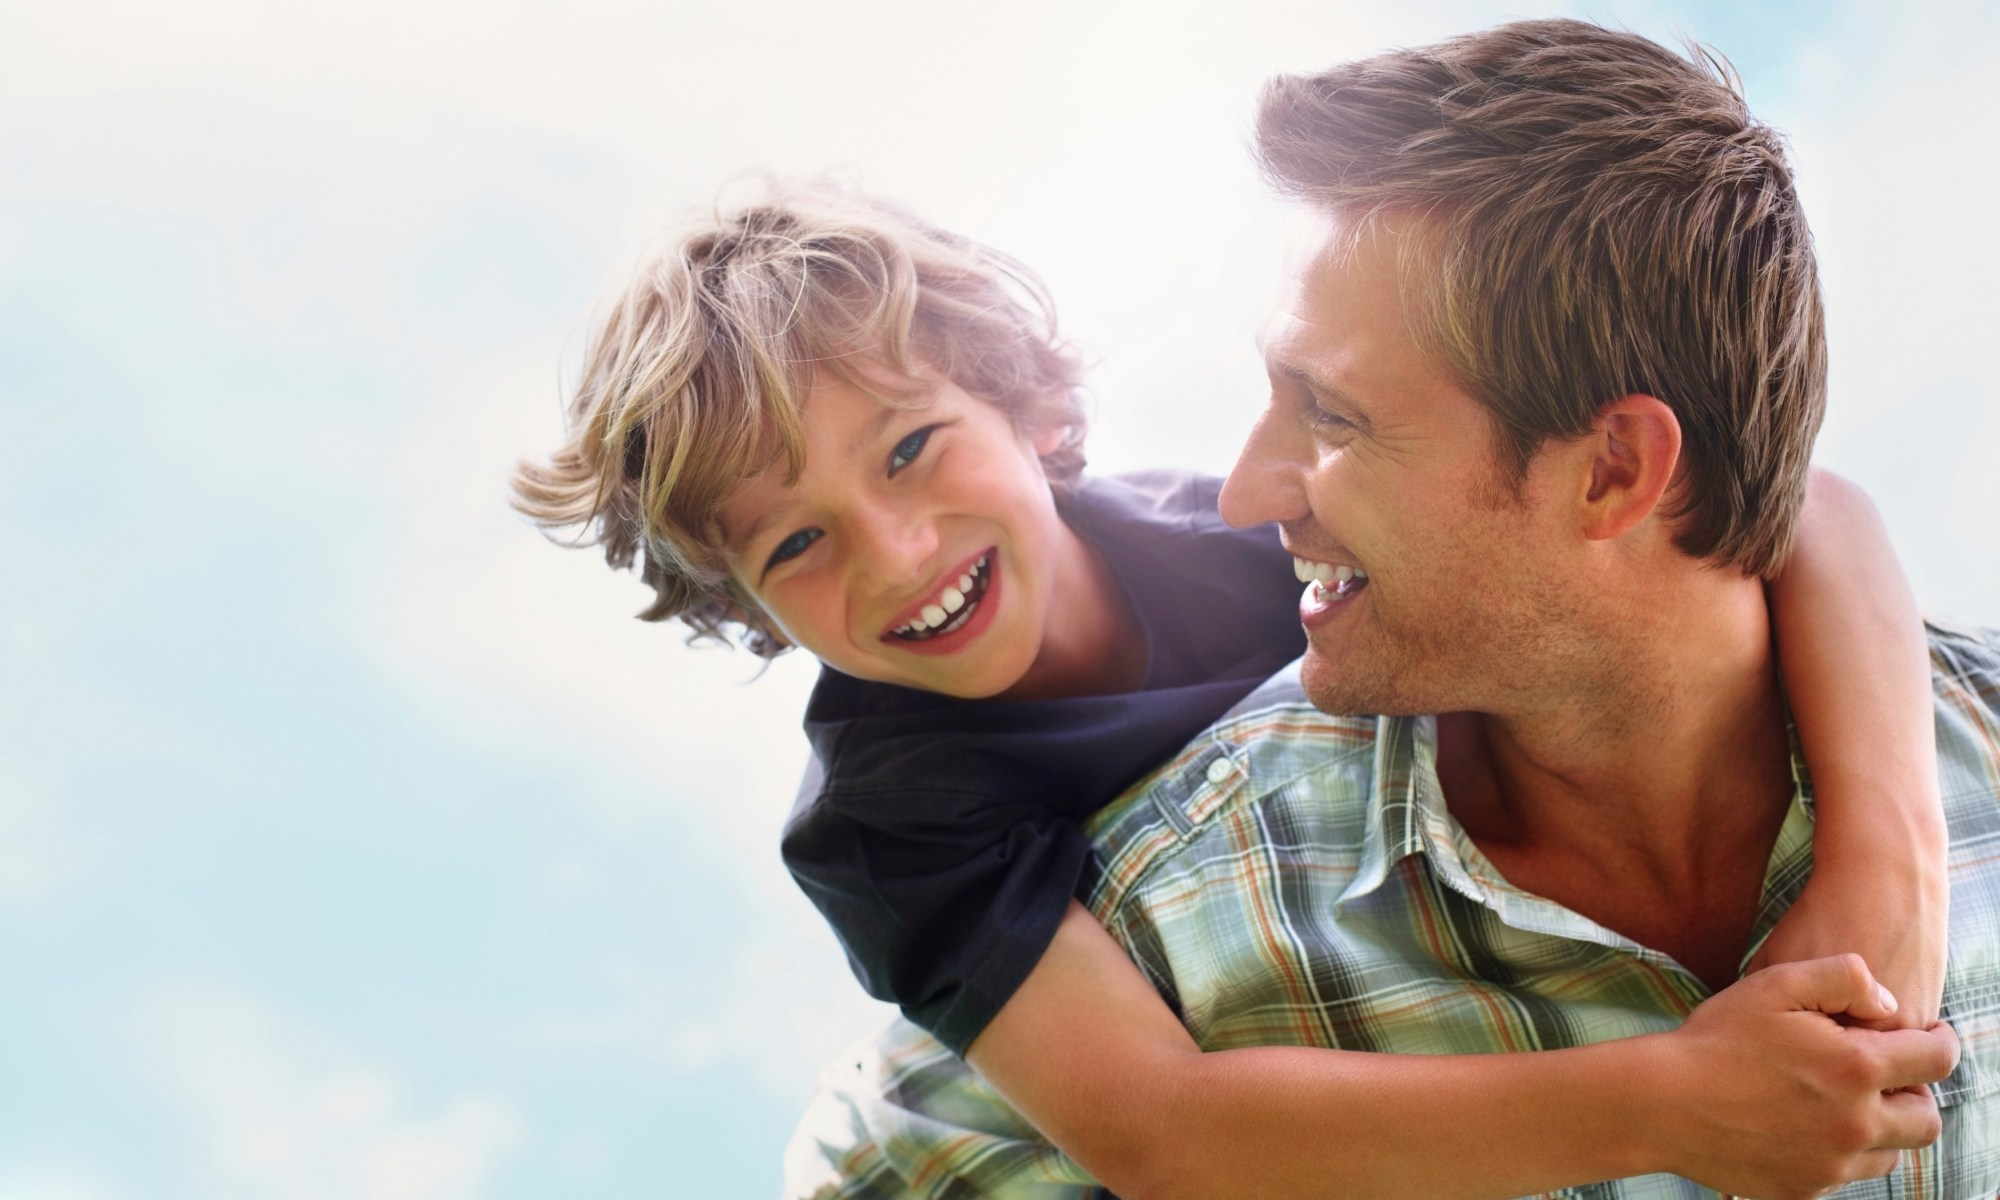 This image shows a son riding on his dad's back. It illustrates the need for adoptive and foster parents to celebrate adoption with their kids. Practical tips are offered here about ways to celebrate.